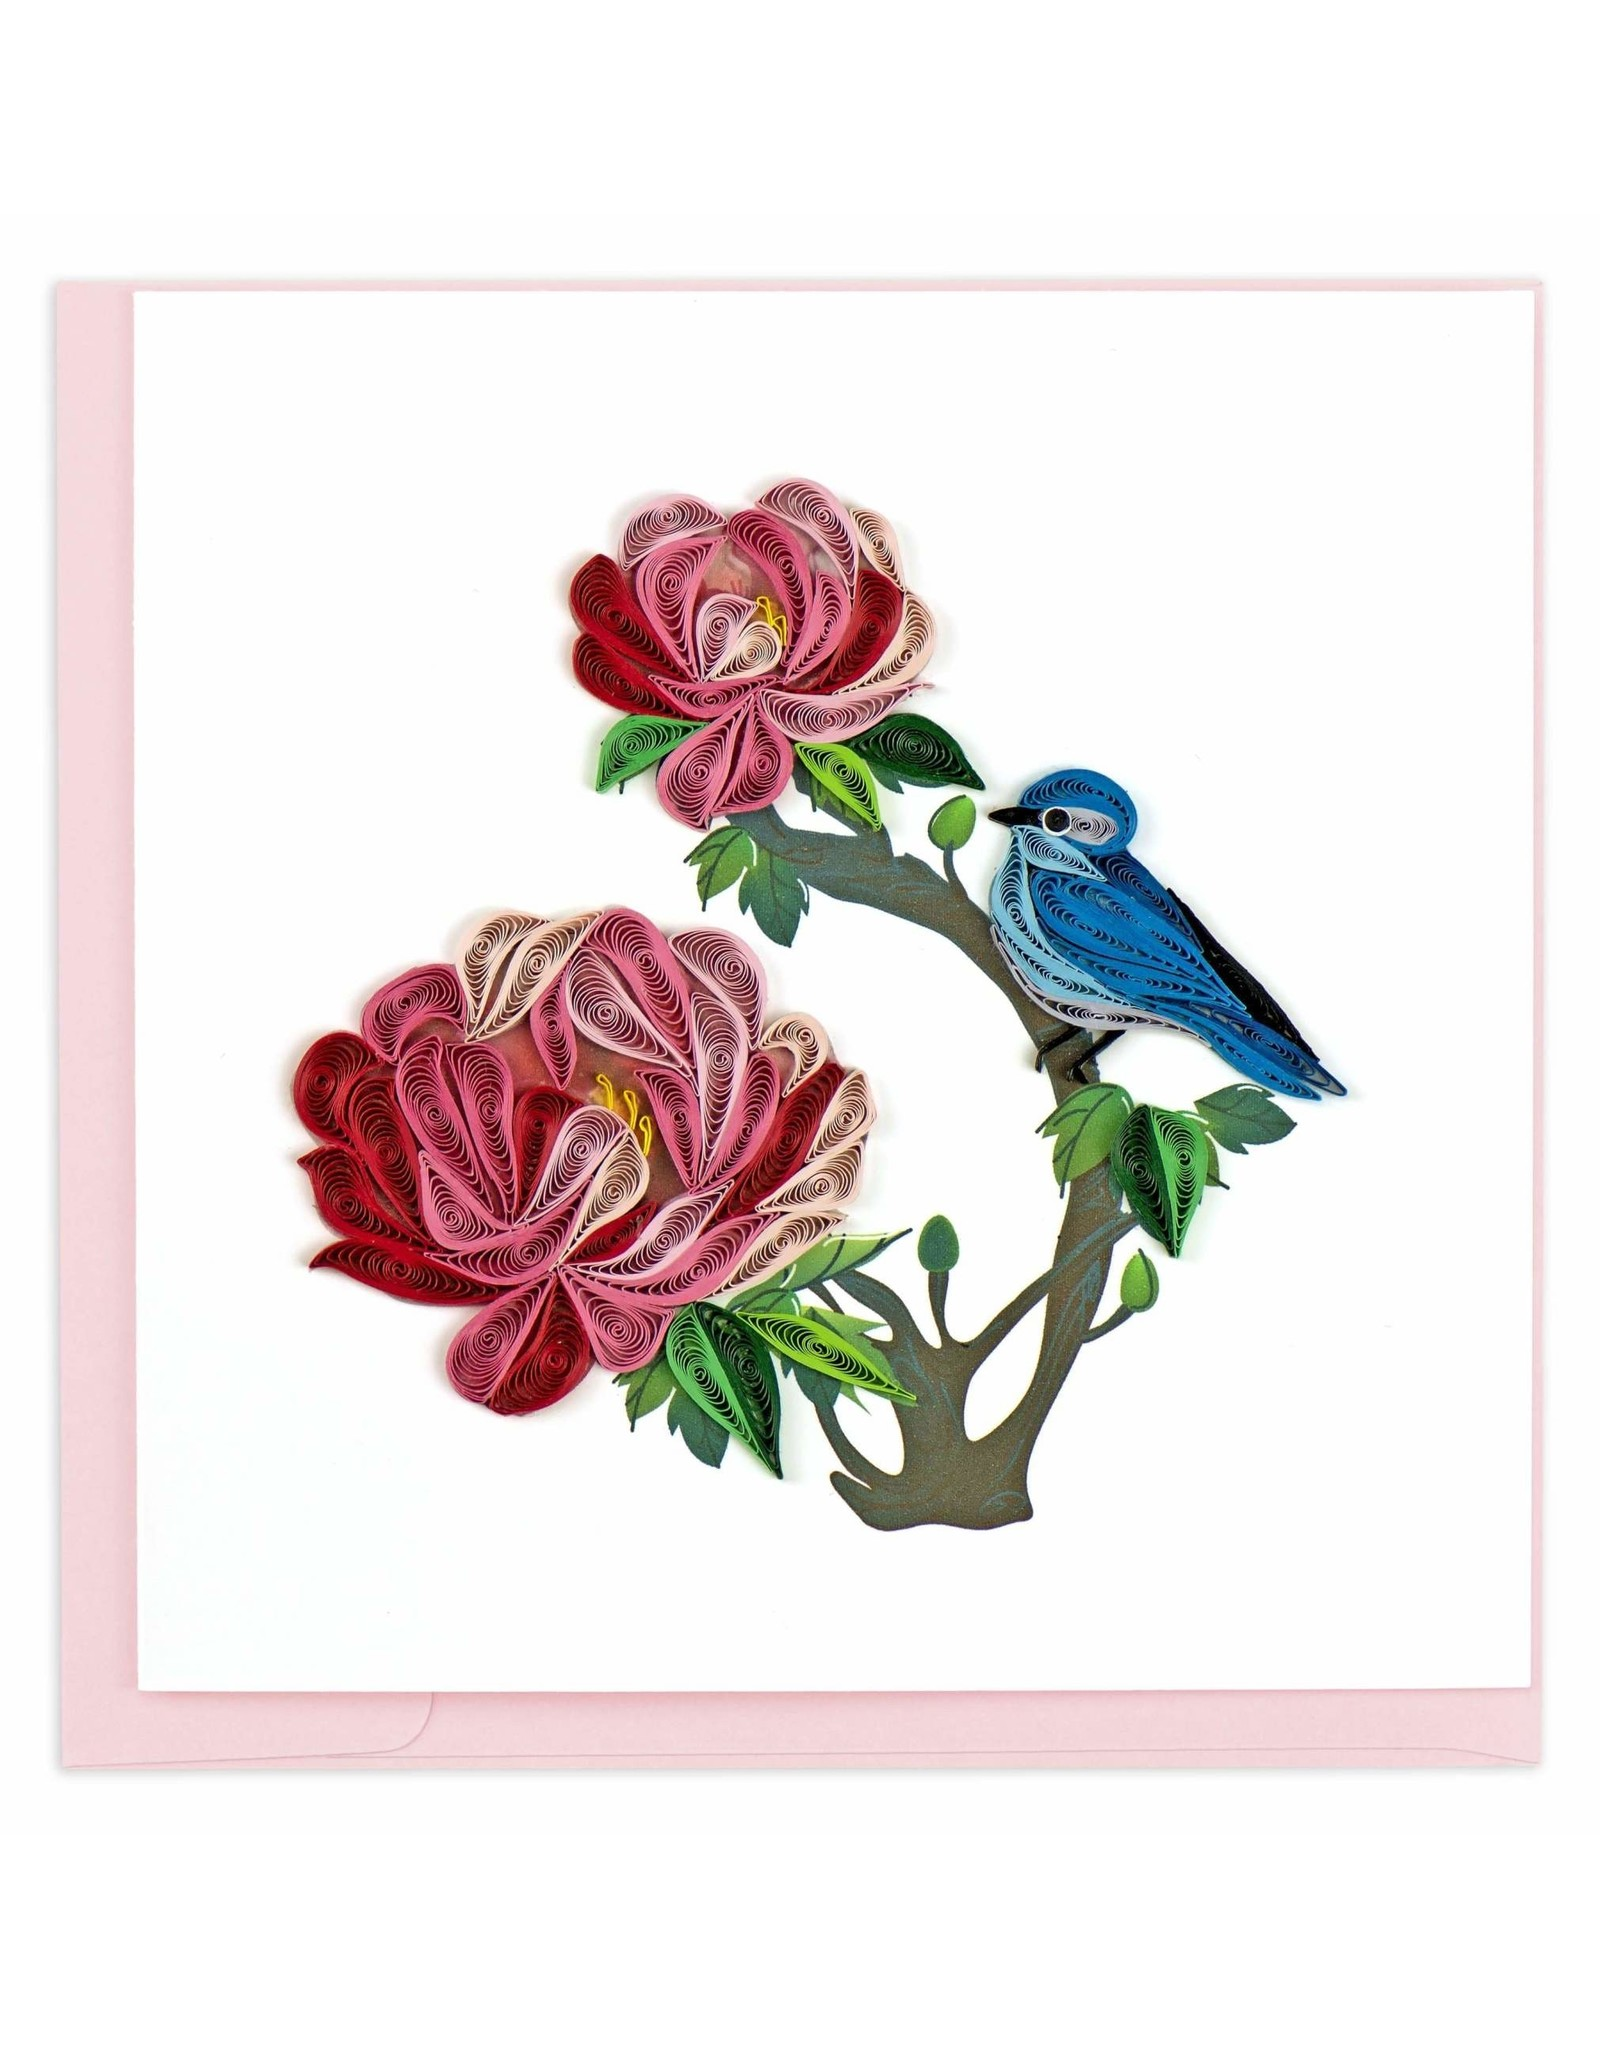 quillingcard Quilled Peony Card, Vietnam